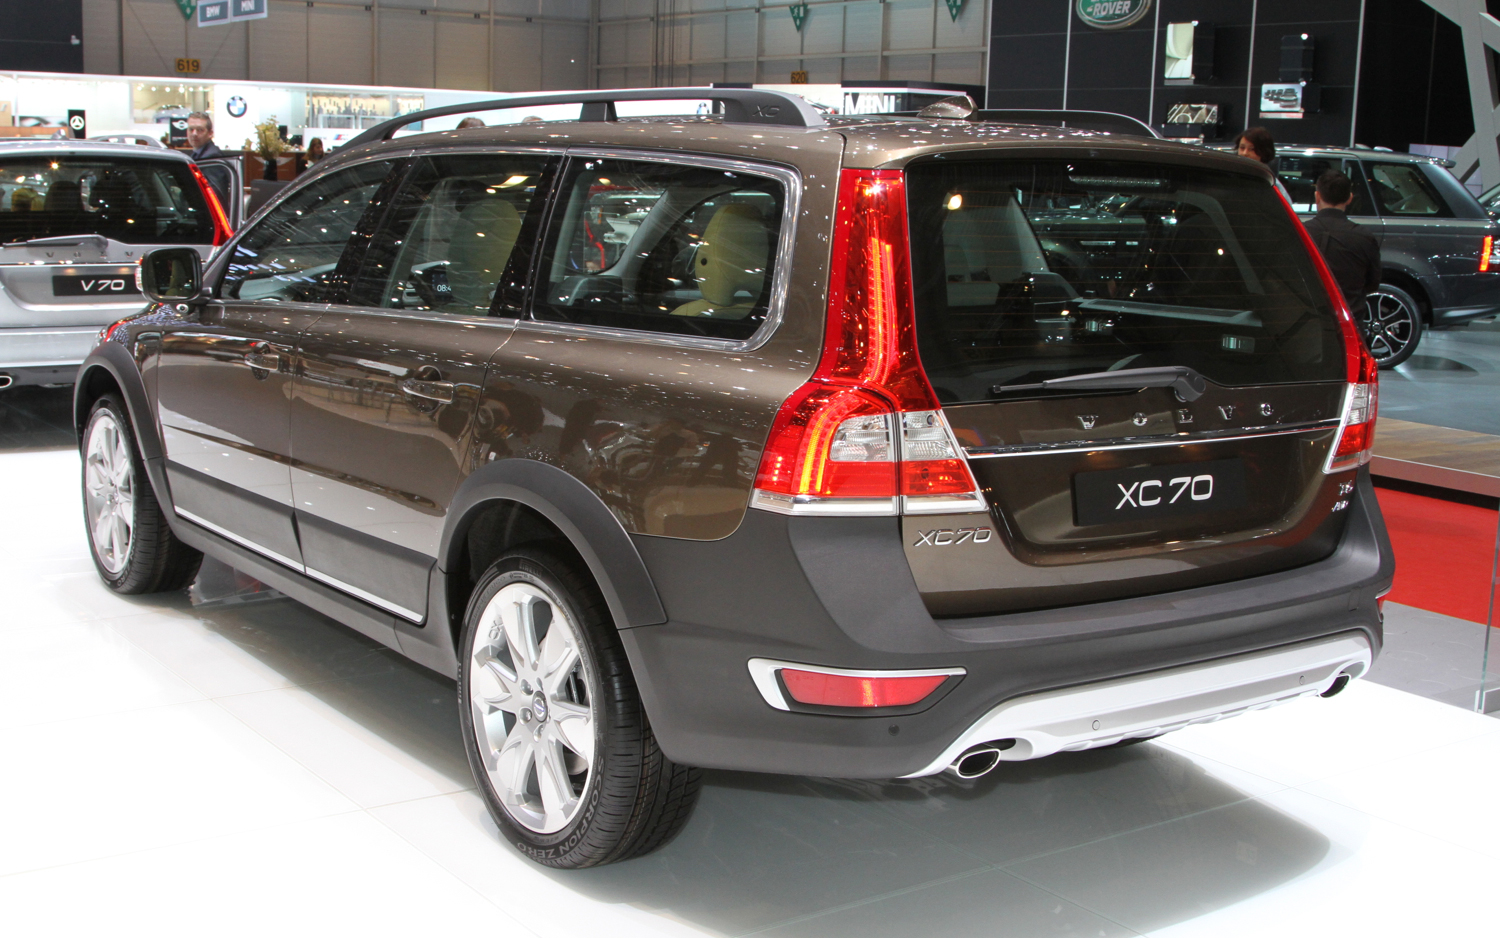 2015 volvo xc70 image 5. Black Bedroom Furniture Sets. Home Design Ideas